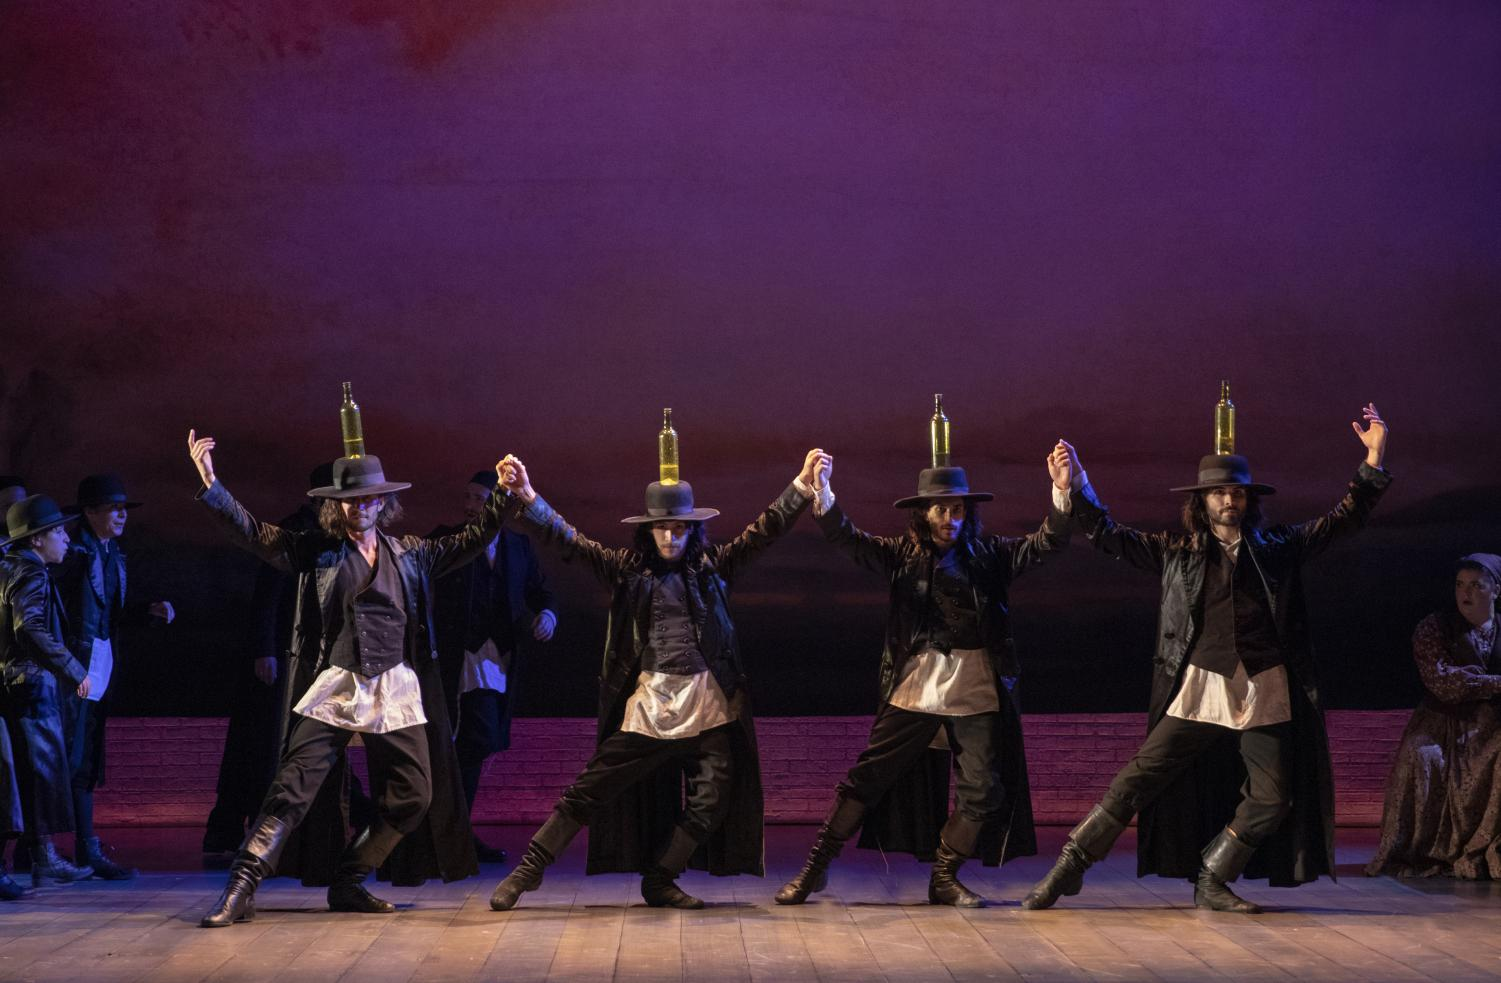 Fiddler on the Roof will be at the Marcus Center through Sunday.